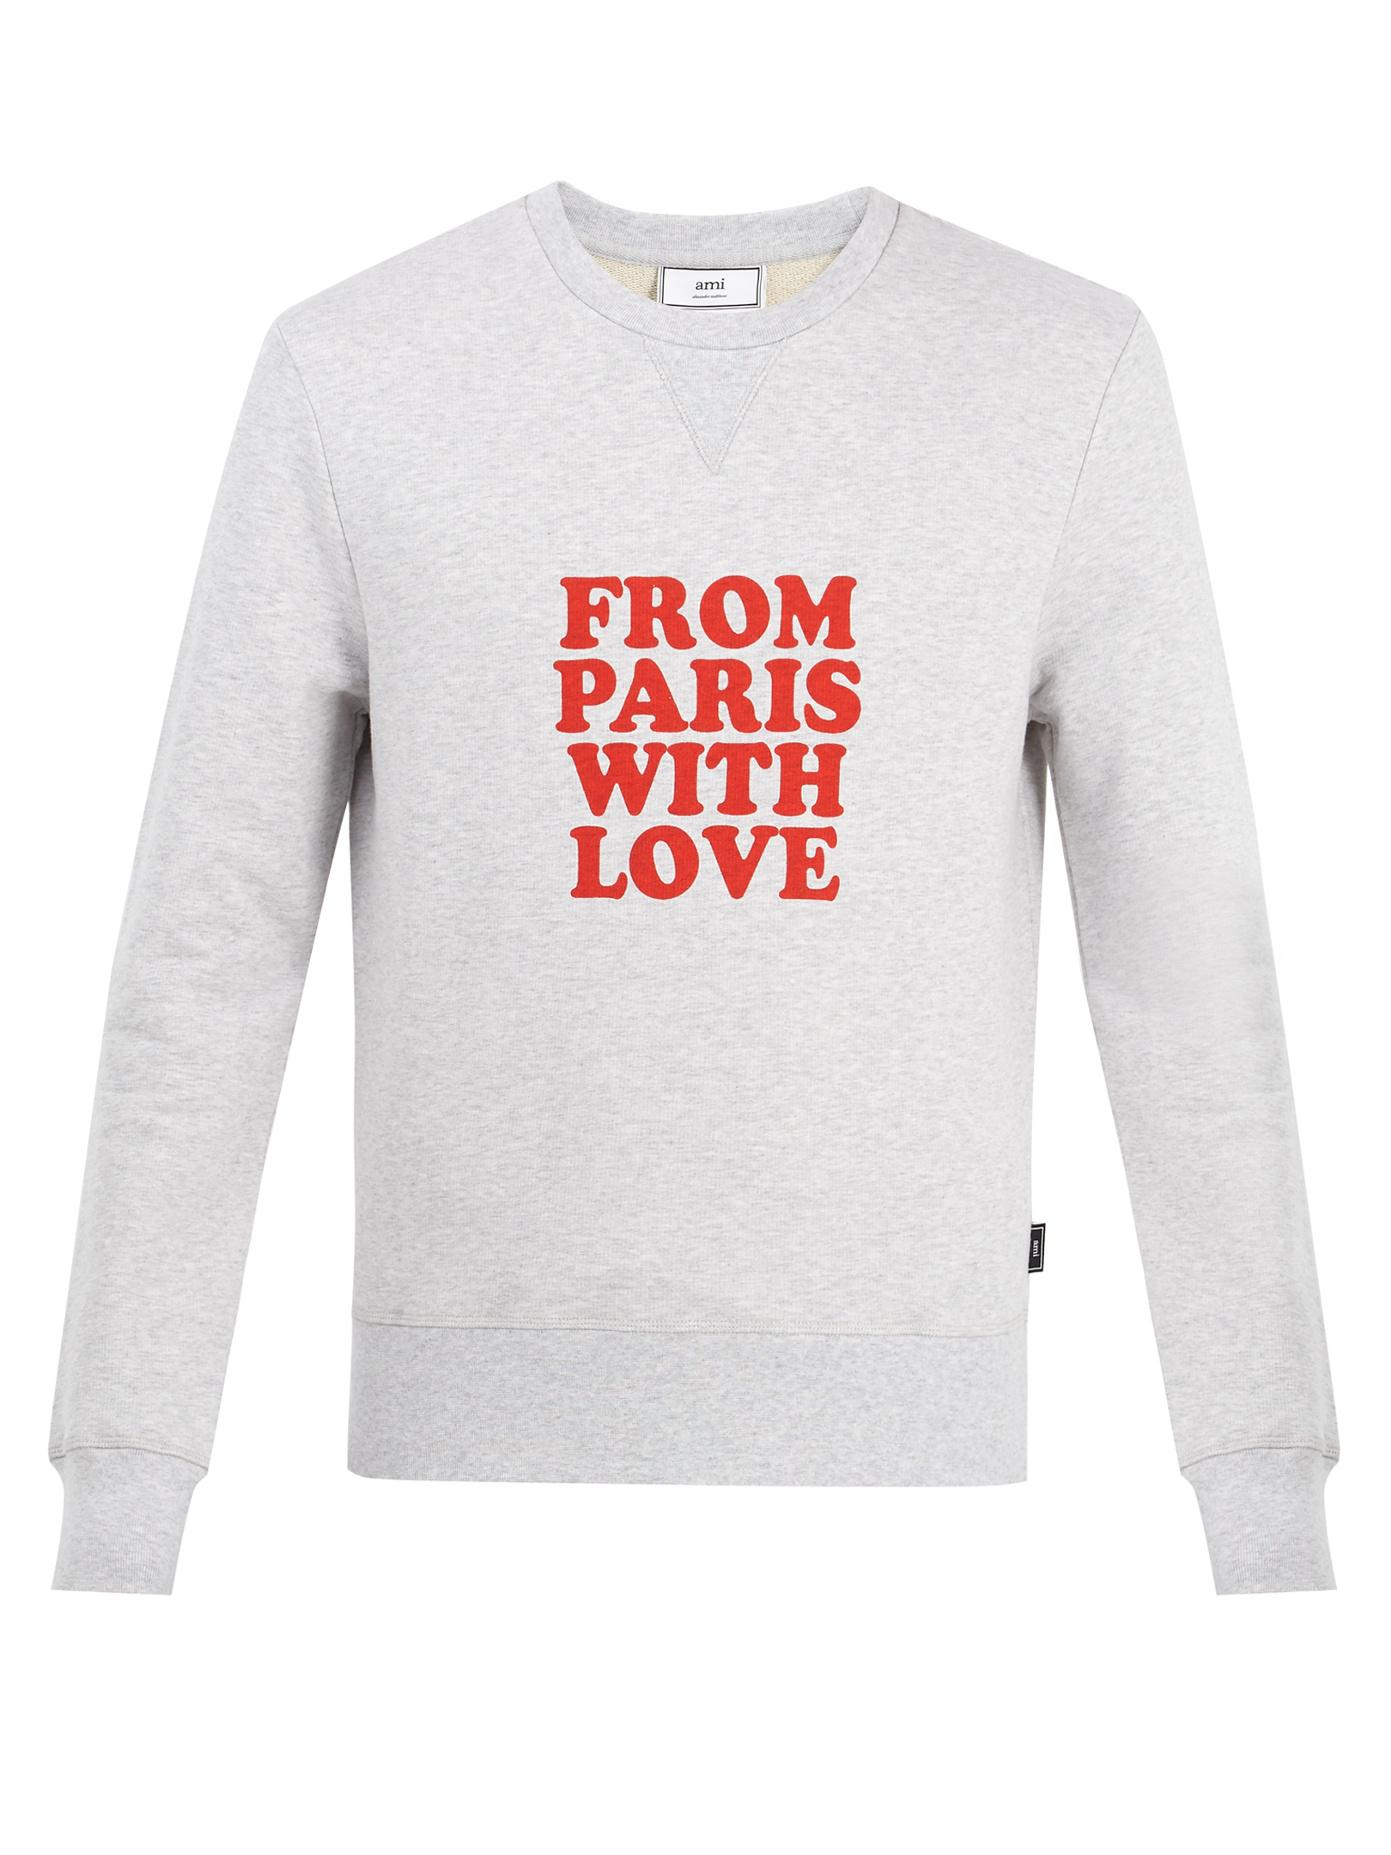 Lyst - Ami From Paris With Love Cotton Sweatshirt in Gray ...